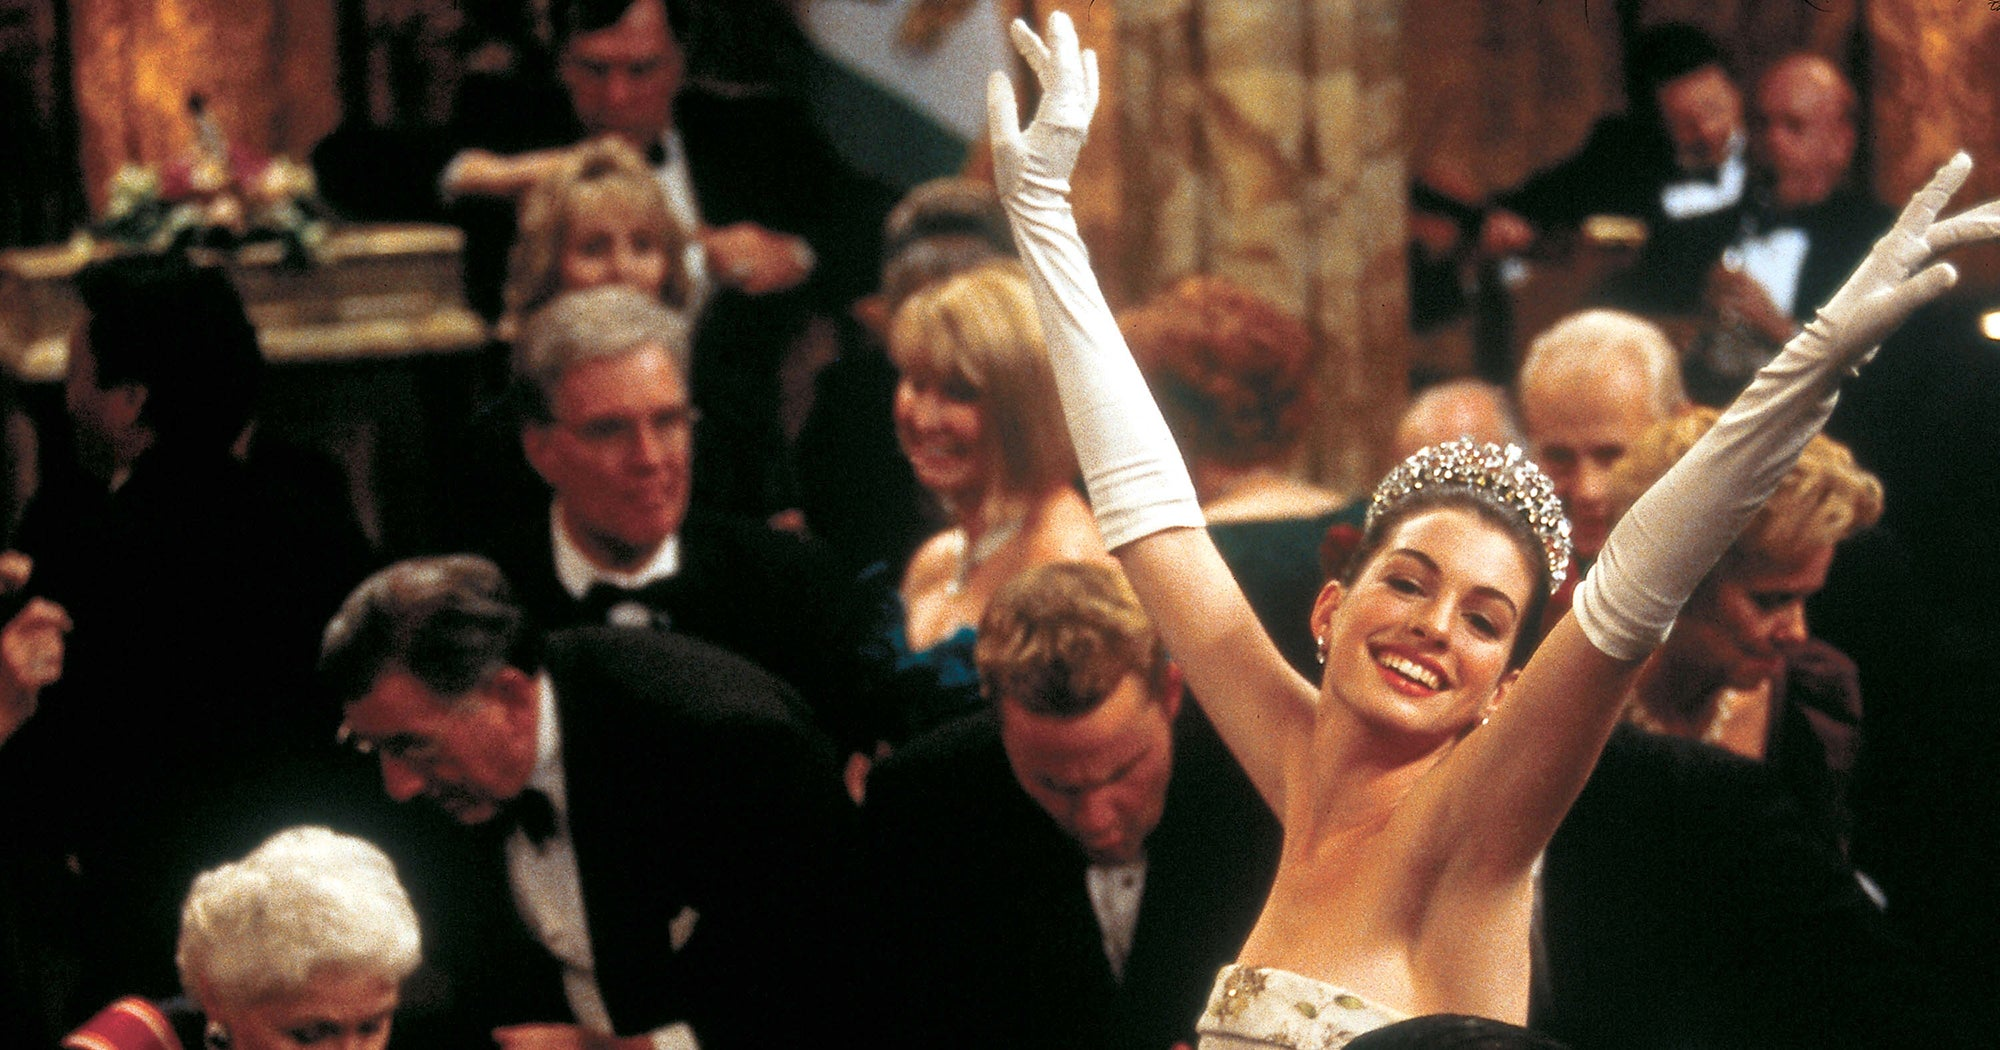 20 Years Later, The Princess Diaries' True Queen Is Vice Principal Gupta